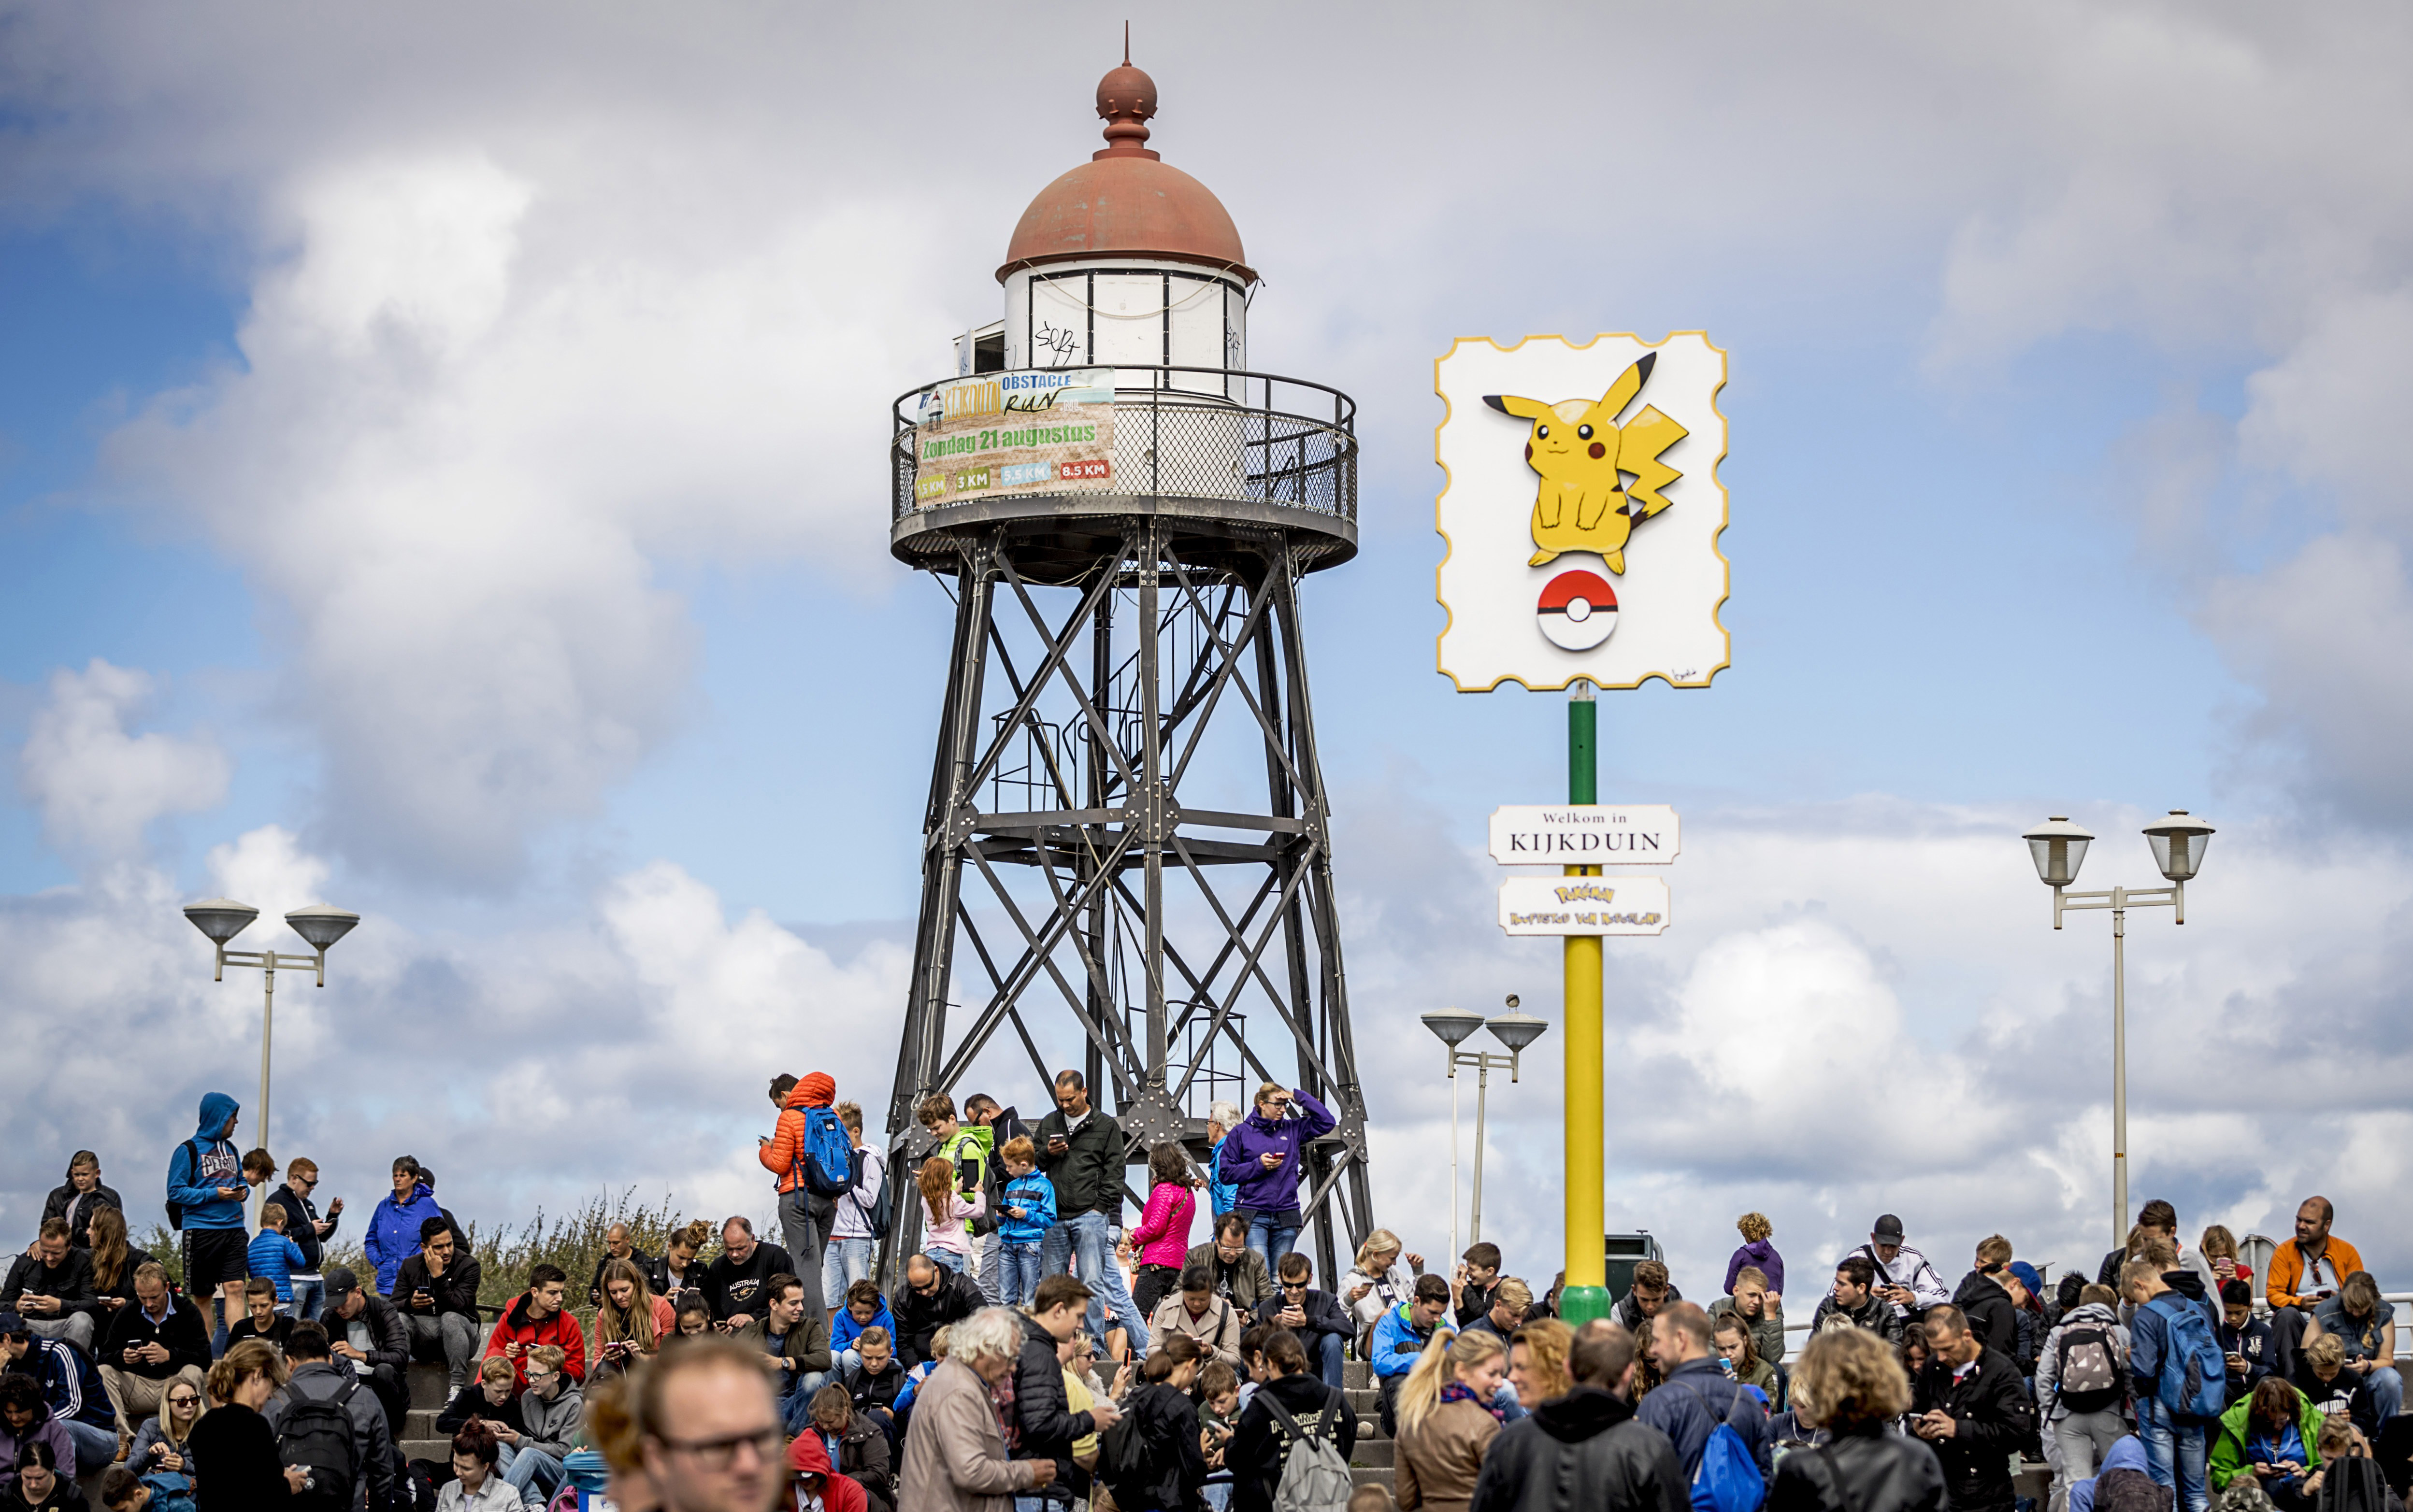 Pokemon Go players look at their cell phones as they gather at the beach in Kijkduin, which has been named as the Pokemon capital of the Netherlands, on August 10, 2016.